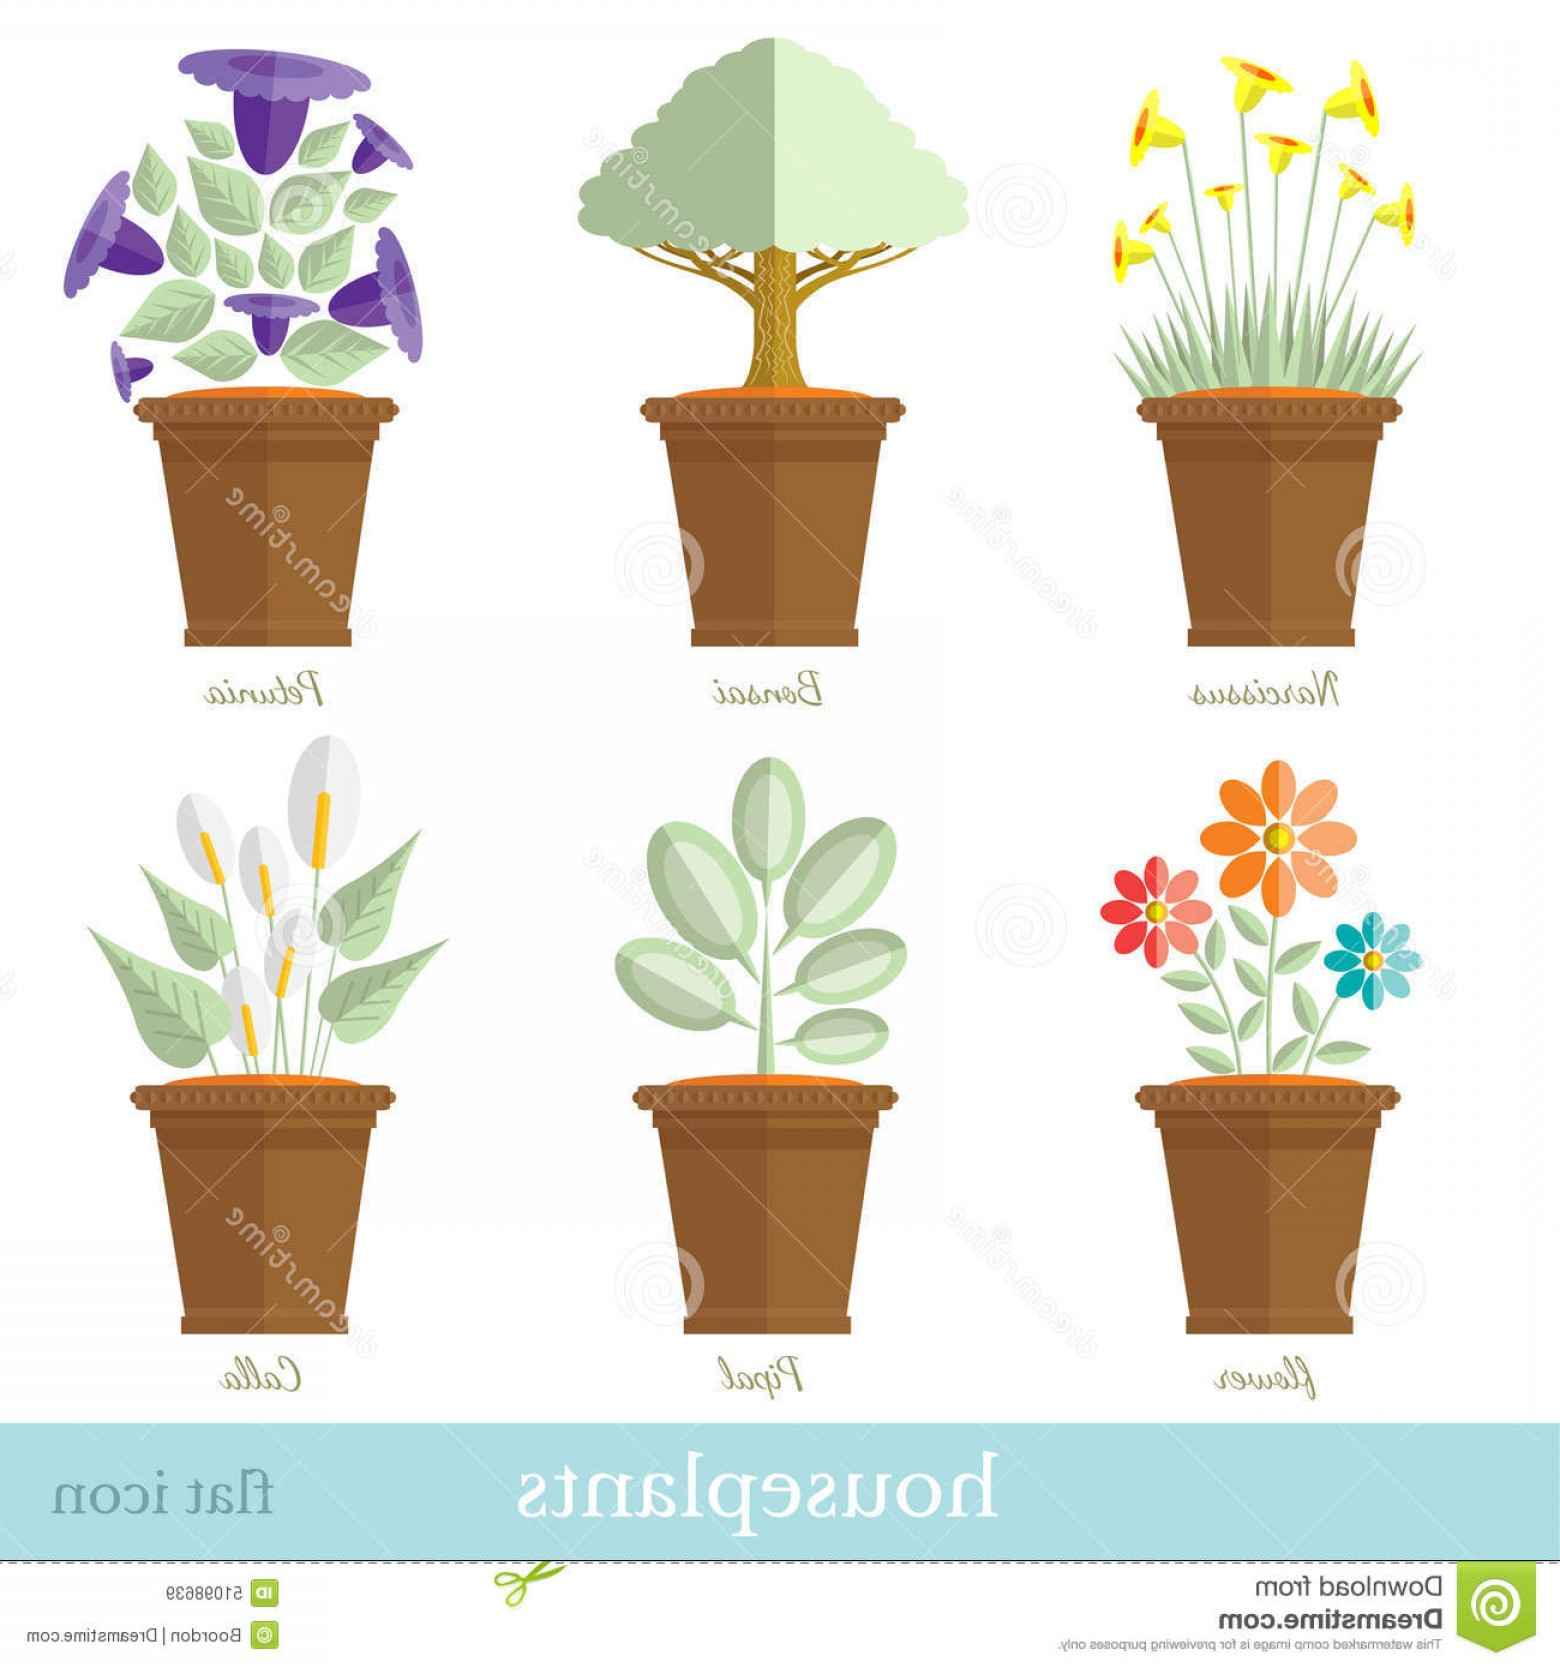 Flower Pot Vector Graphics: Stock Illustration Flat Design Set House Plant Flower Flowerpot Set Image